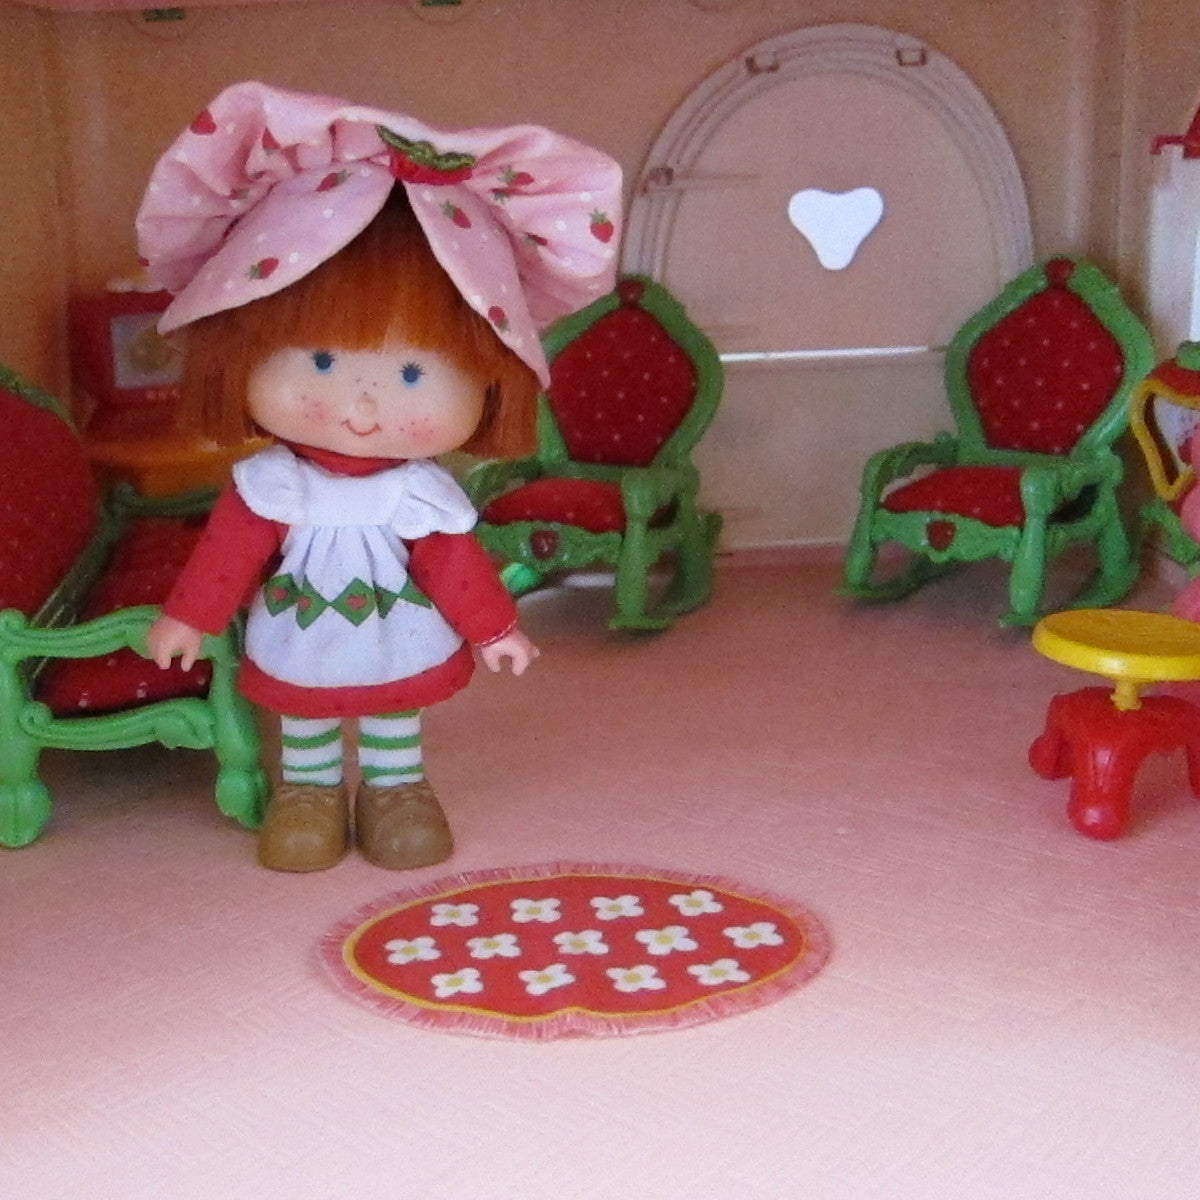 Red Rug For Strawberry Shortcake Berry Happy Home